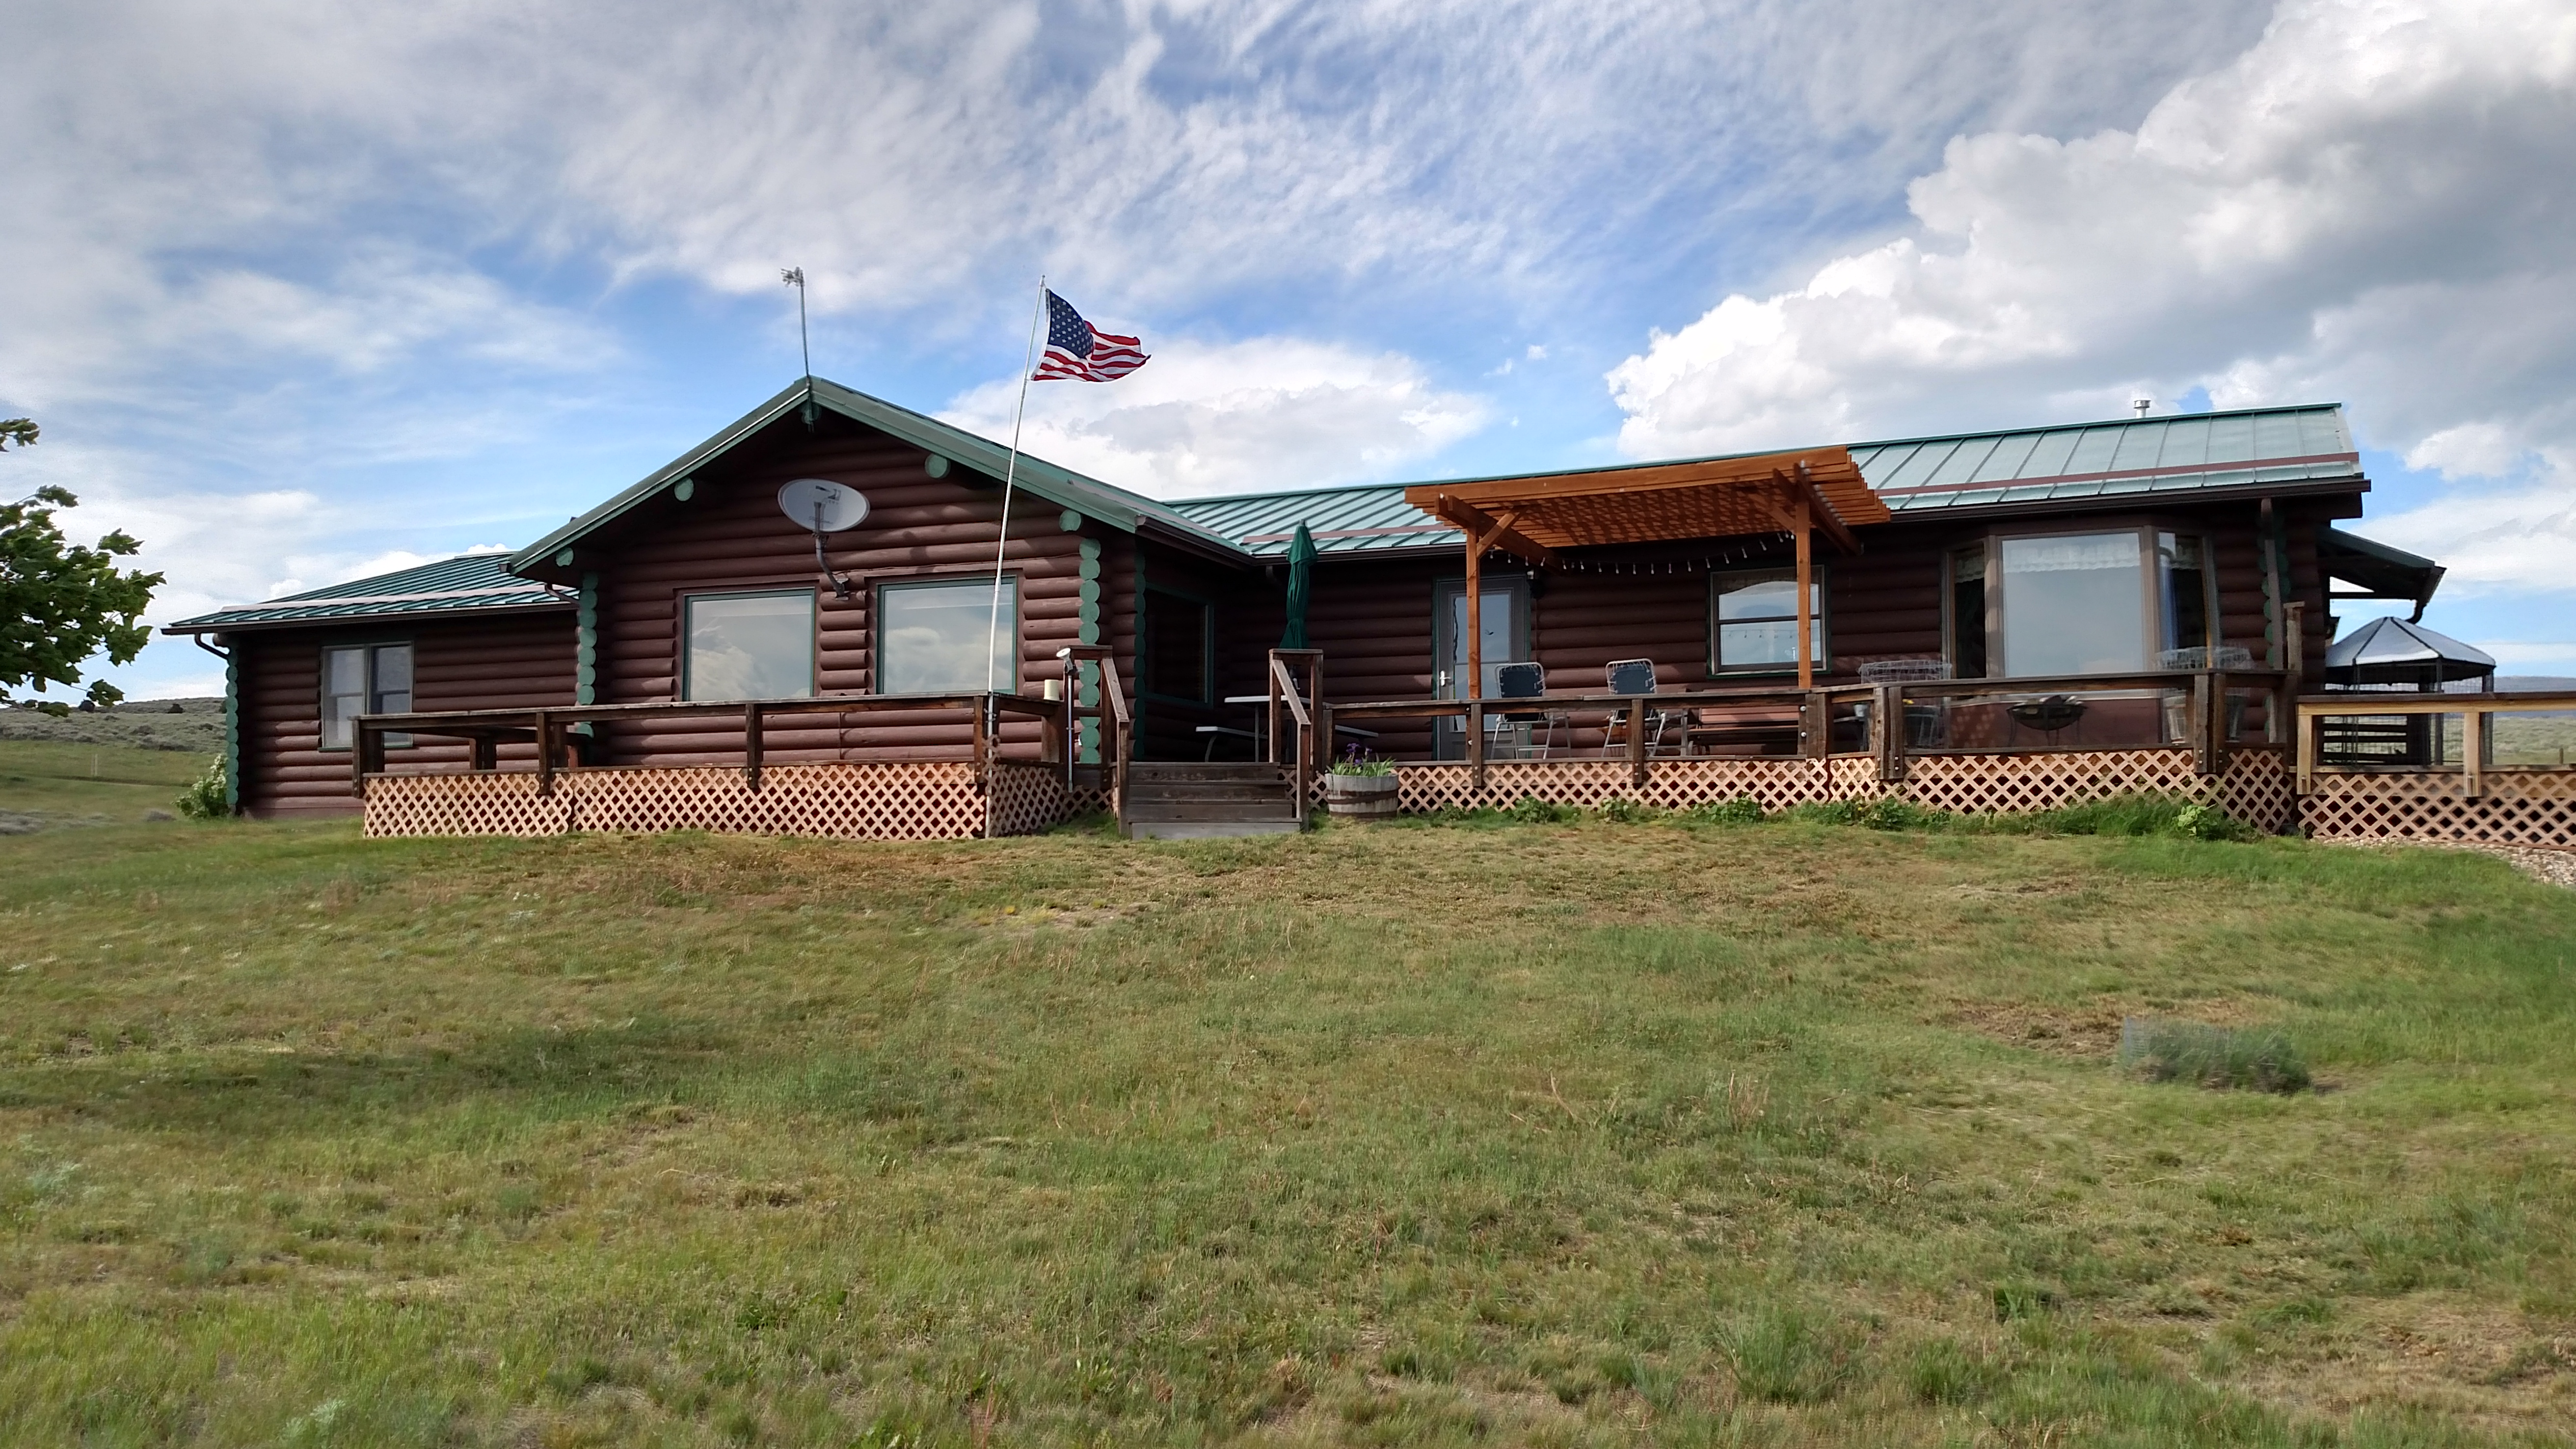 Commercial Property For Sale West Yellowstone